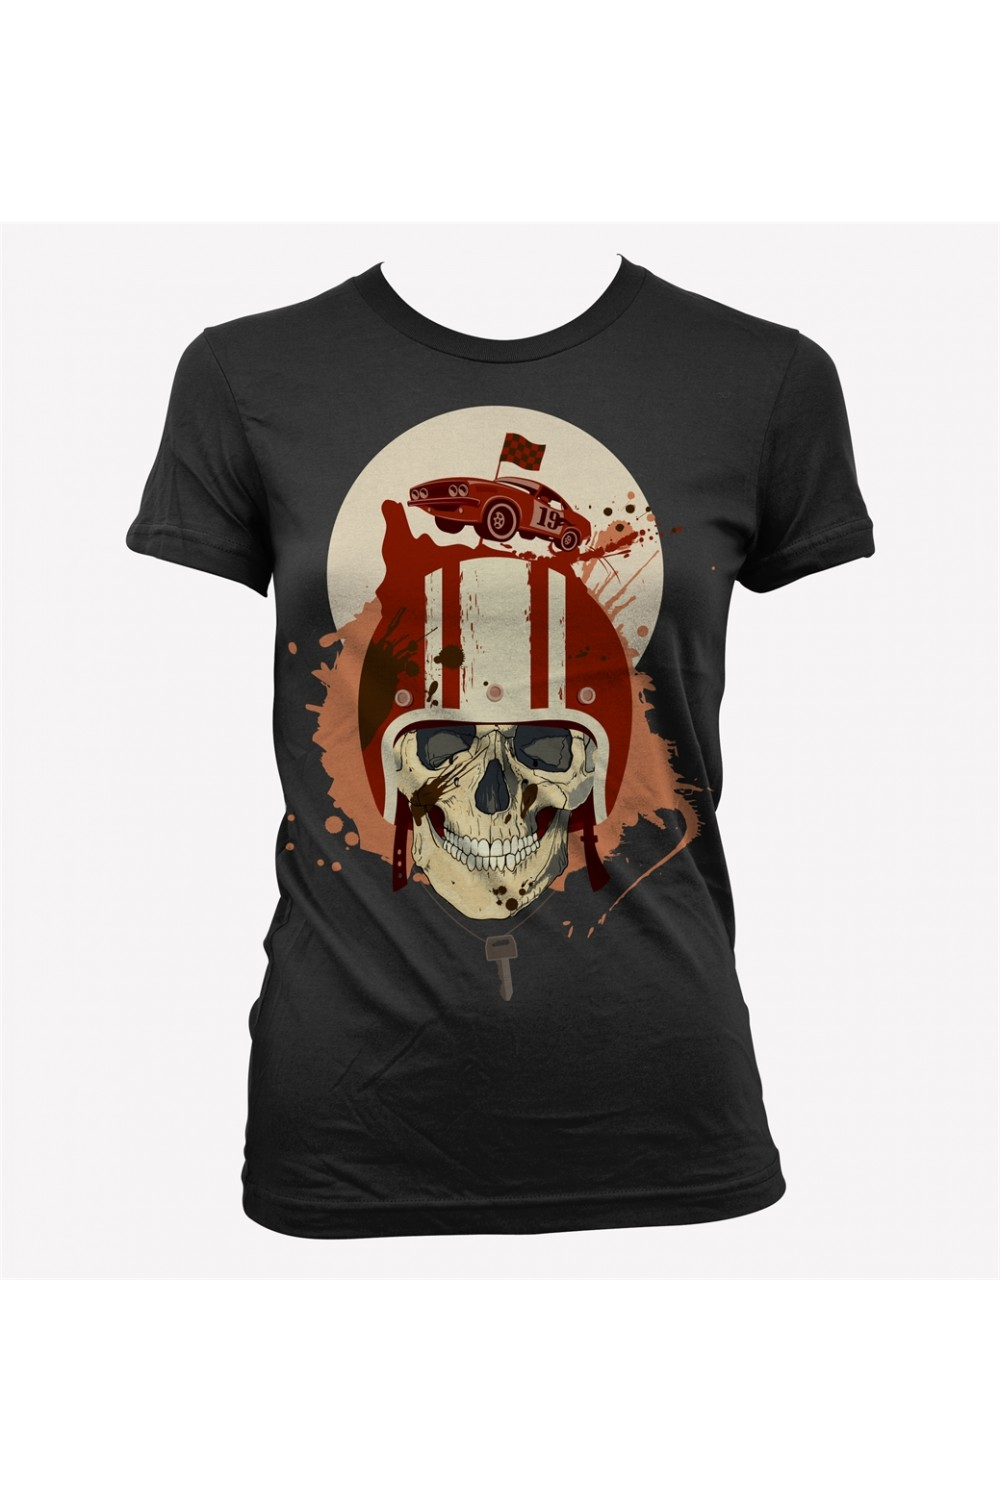 Racing Skull Women Printed T shirt 4007A